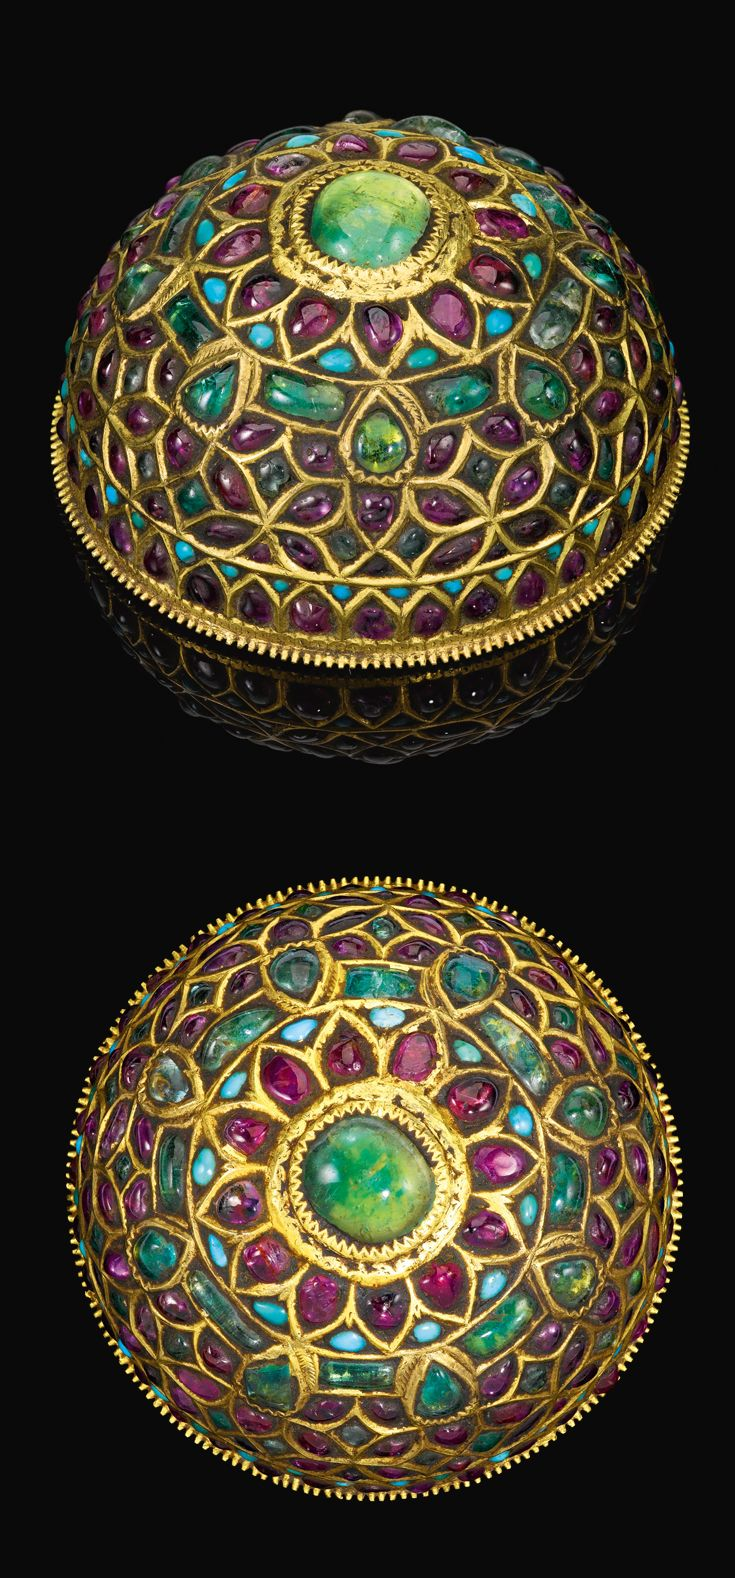 Probably South India | Gemset gold hair ornament; decorated on surface in the kundan technique with rubies, emeralds and turquoise | 19th century | Est 8'000 - 12'000£ (Sept '14)